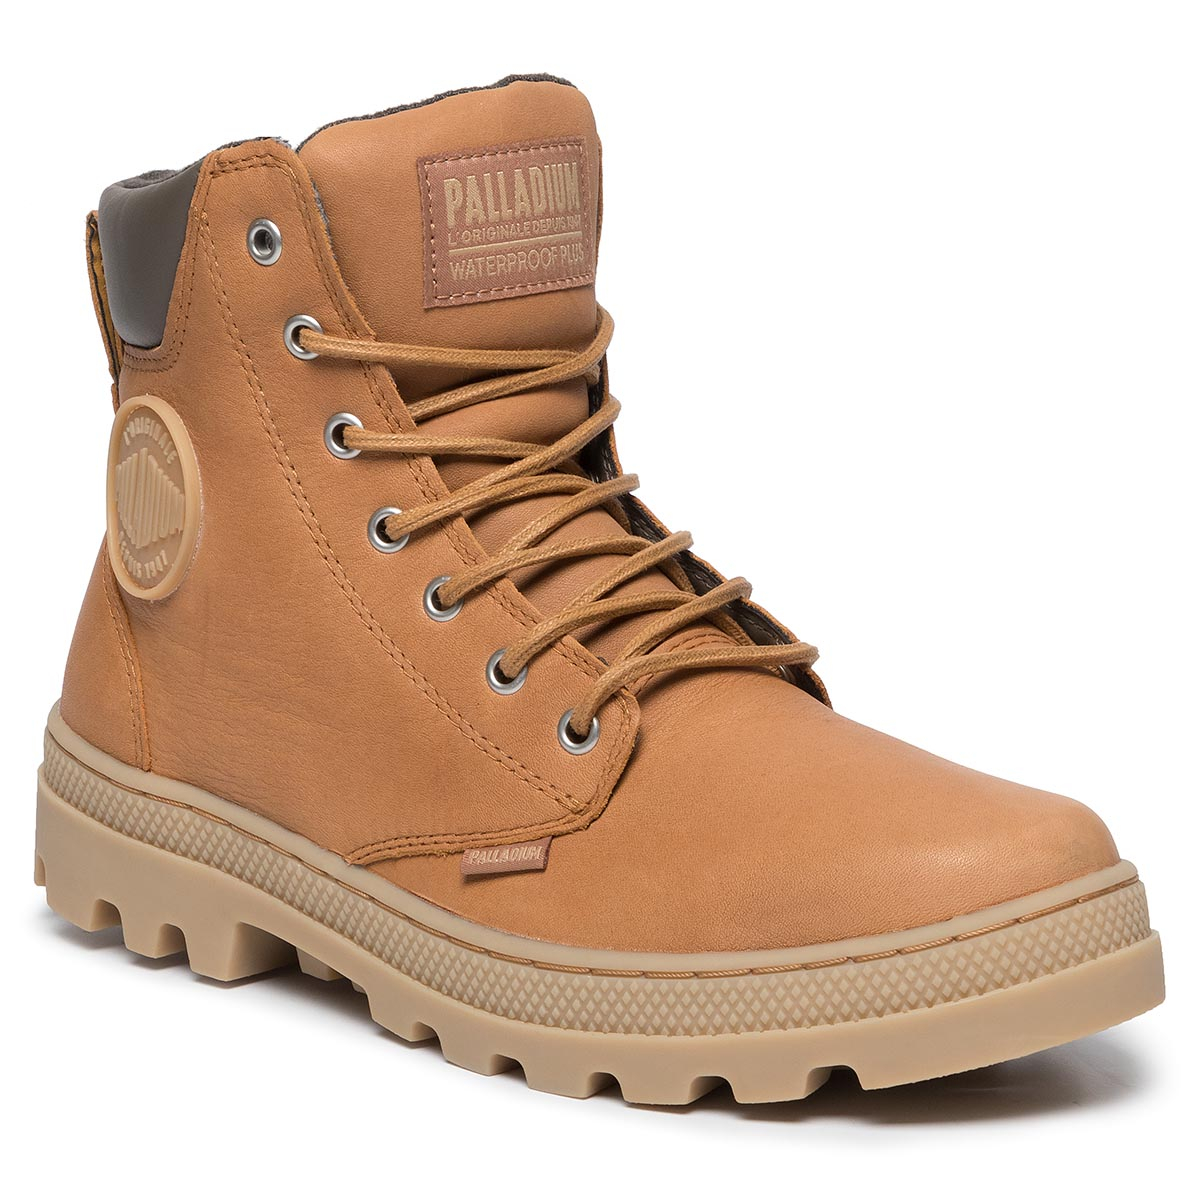 Trappers PALLADIUM - Pallabosse Sc Wp 05938-751-M Apricot Brown